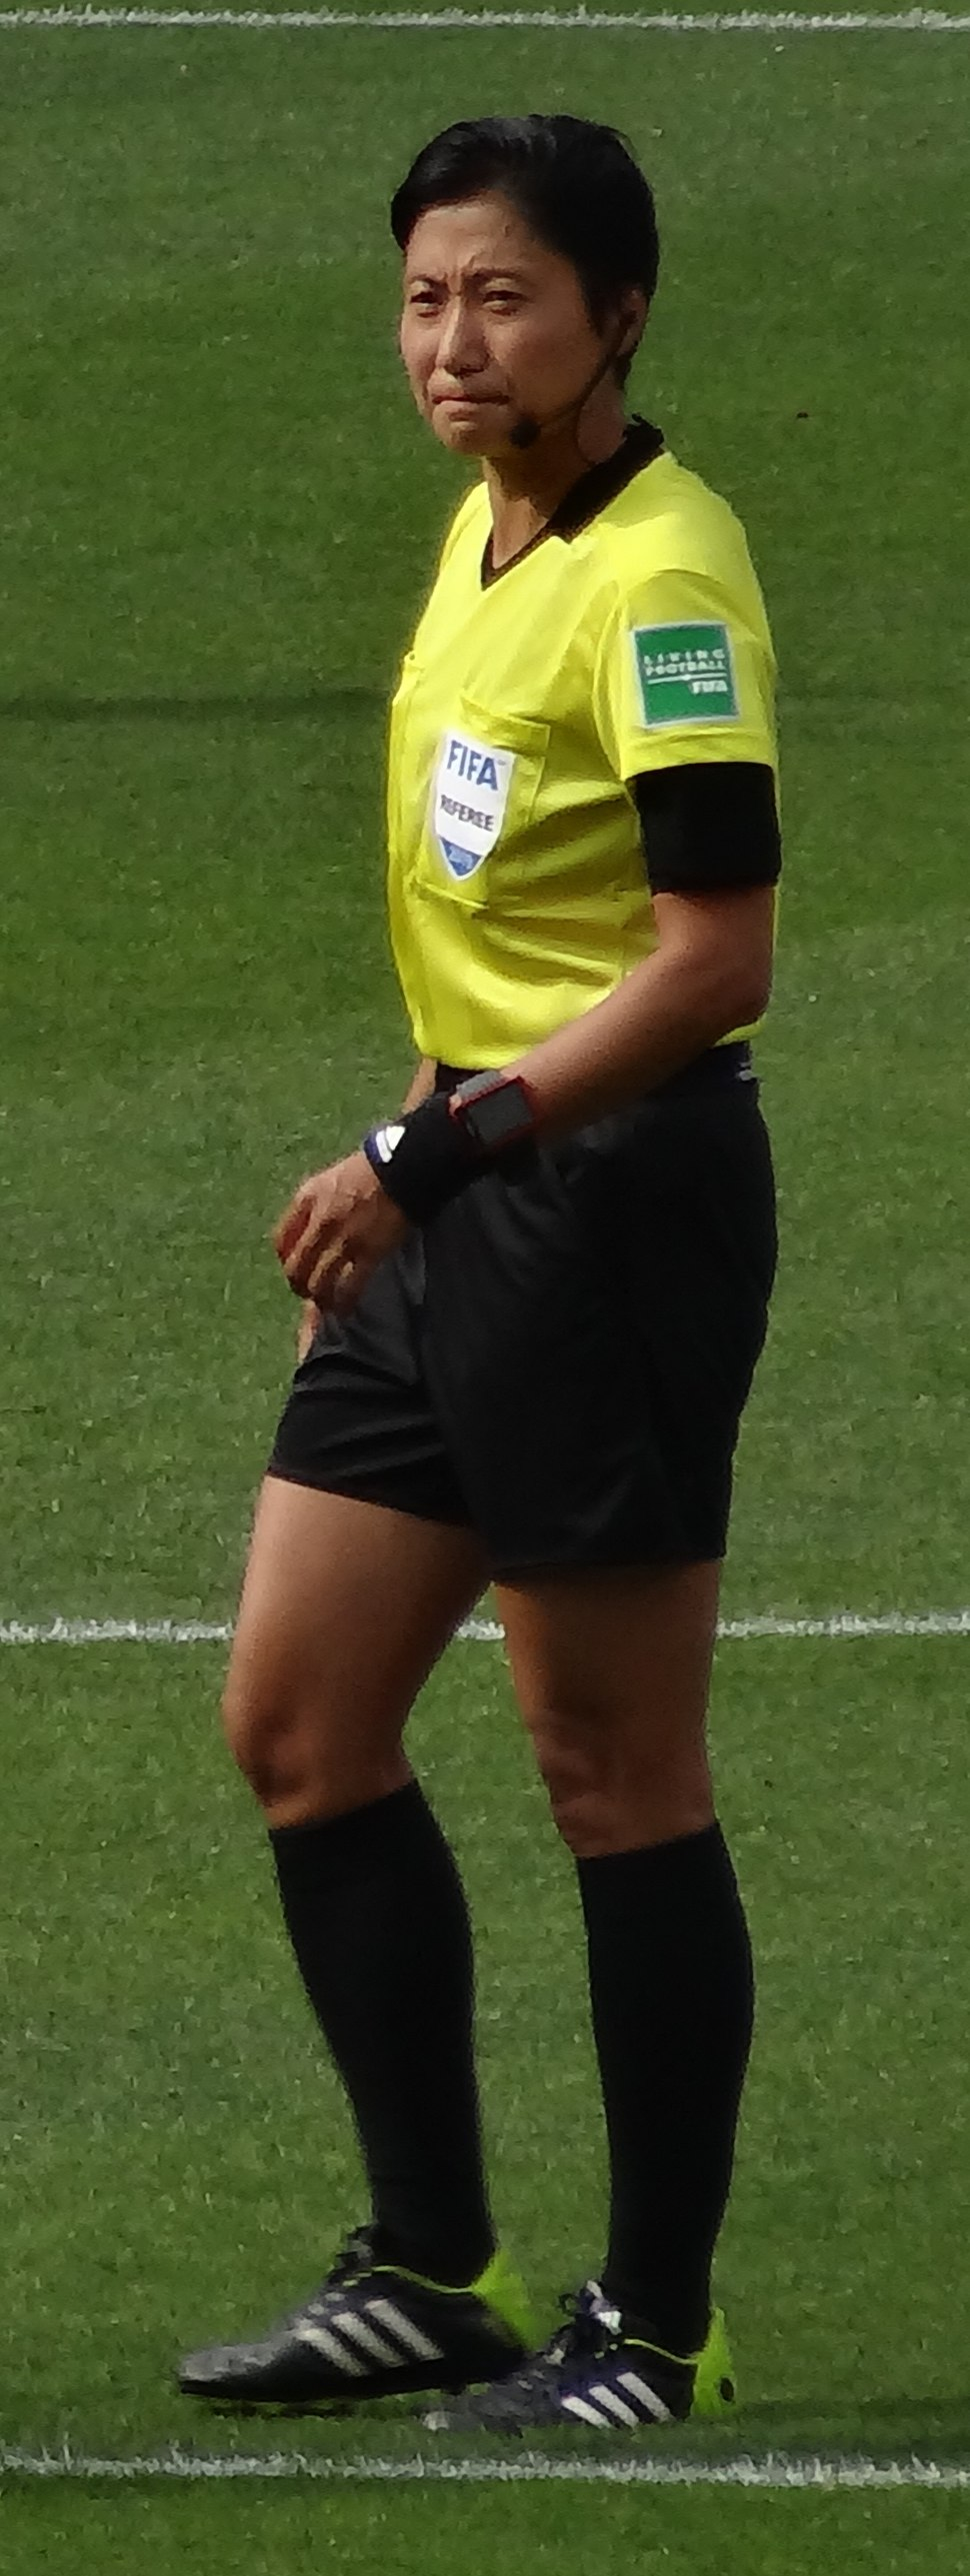 Qin Liang (Women's World Cup 2019 referee)